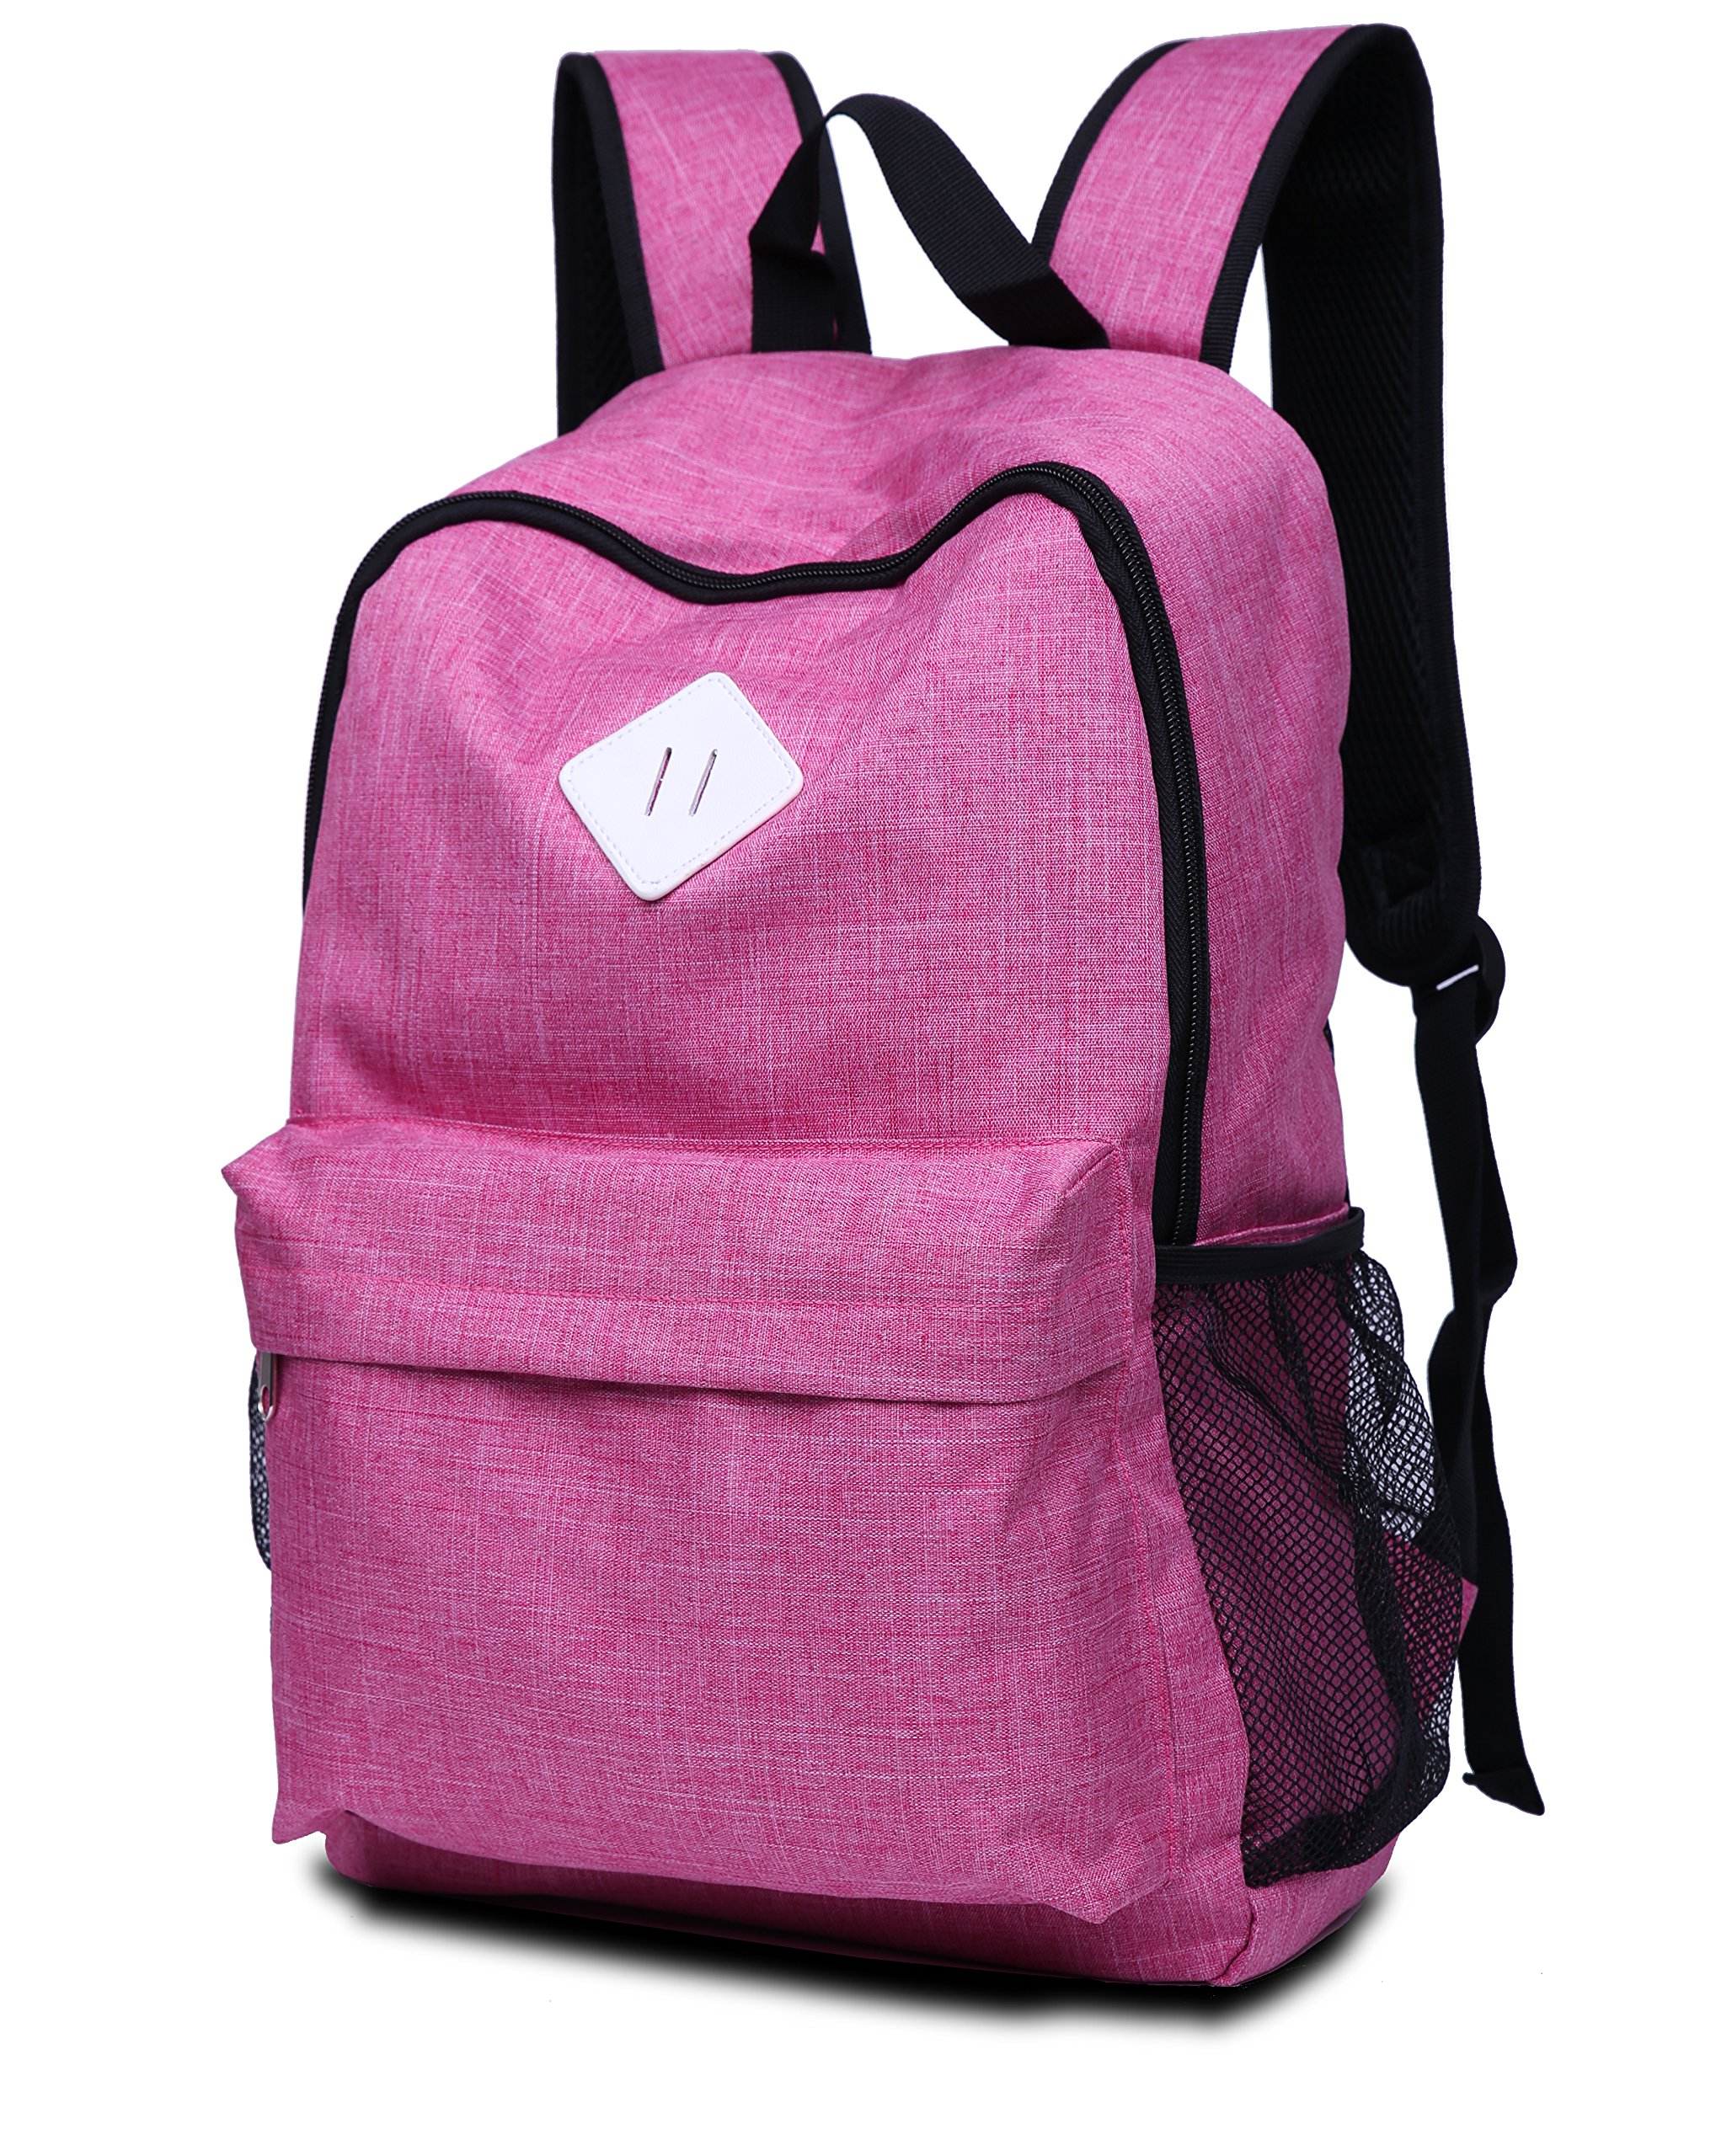 College Backpack For Boys & Girls, Water Resistance Travel Backpack With 17 Inch Laptop Case,High School Backpack For Boys & Girls With Hidden Pocket Design Bookbags (PINK)